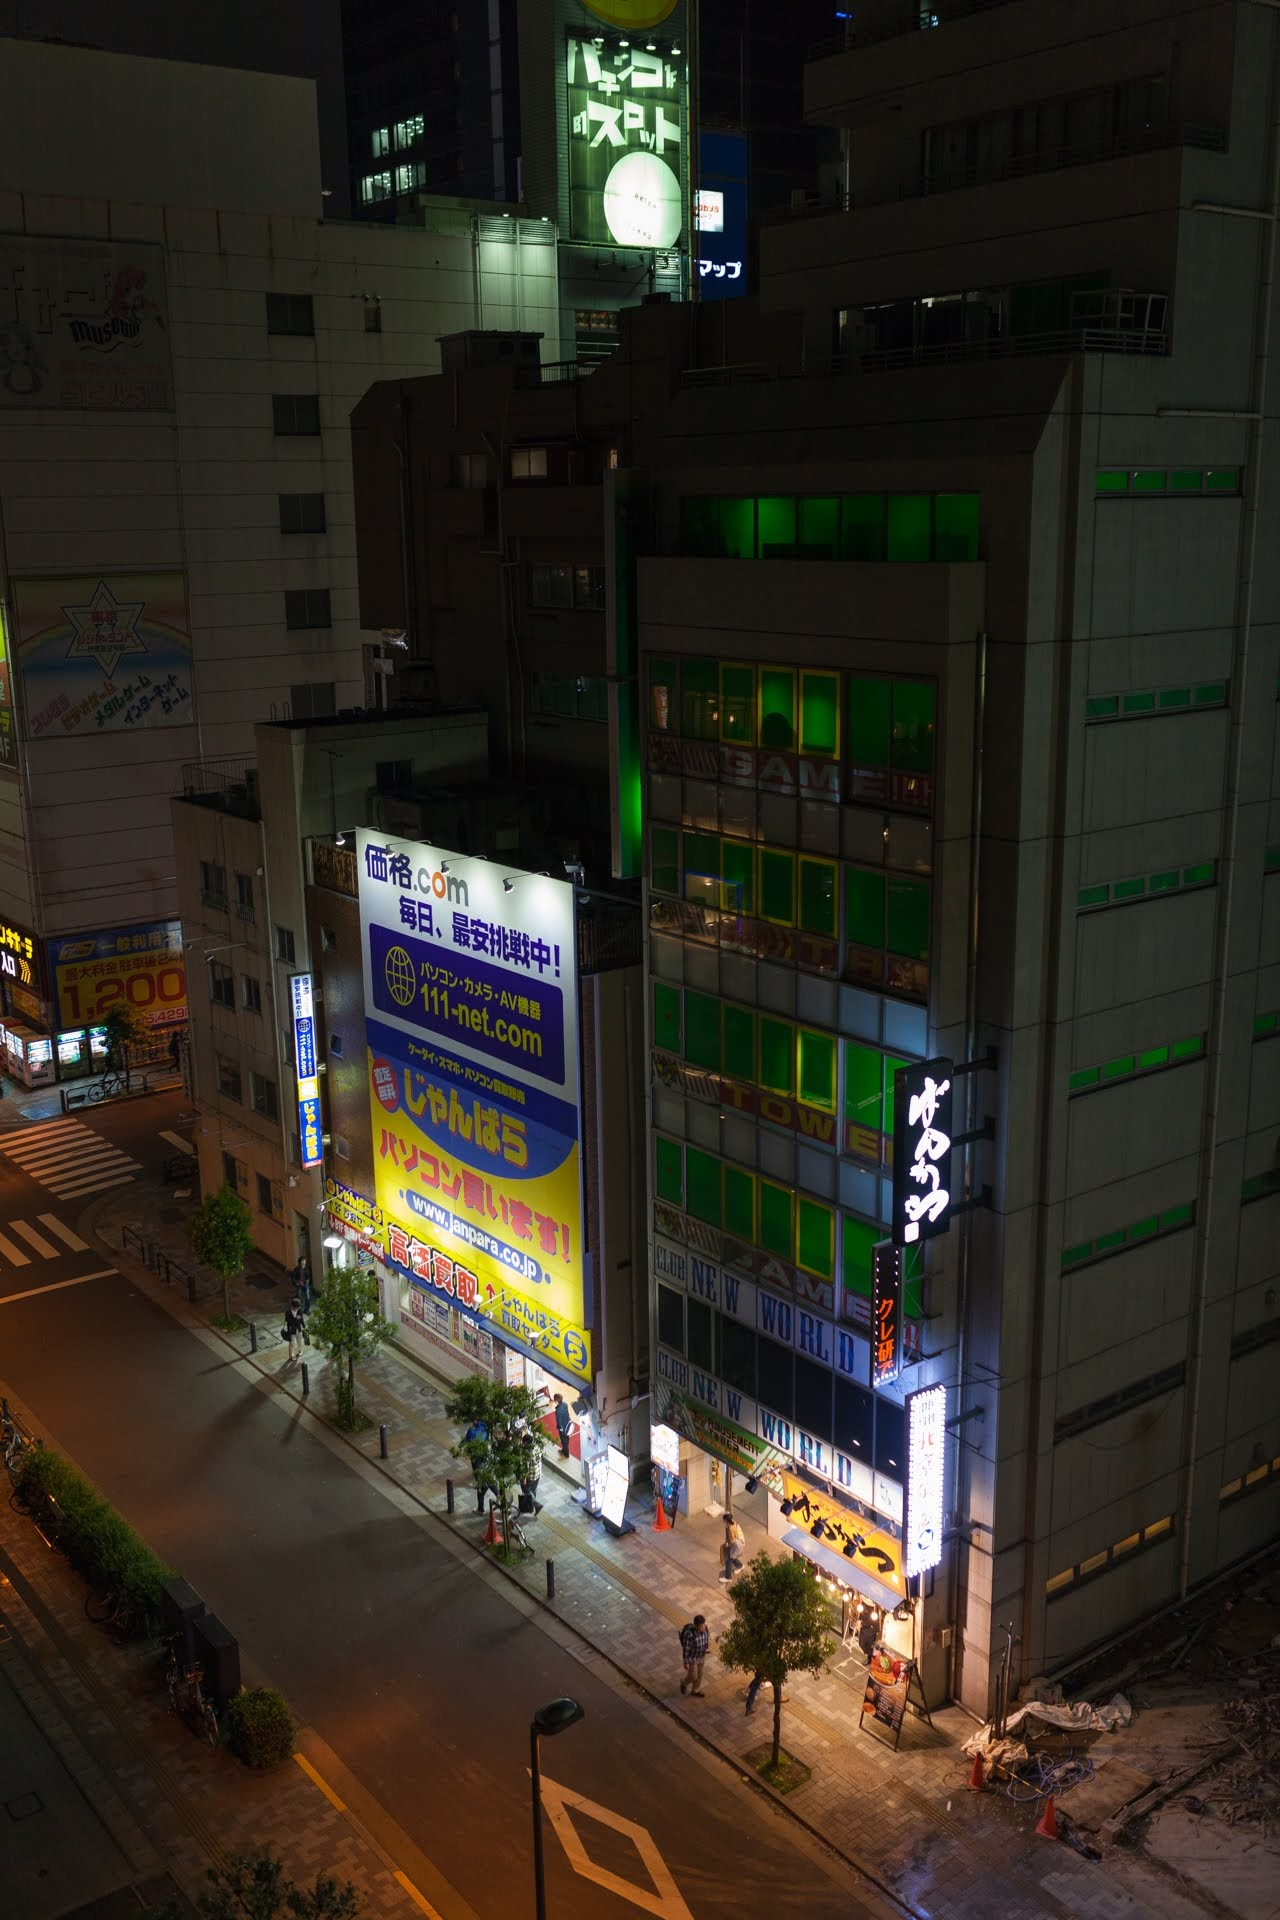 The view from our balcony in the Airbnb in Akihabara